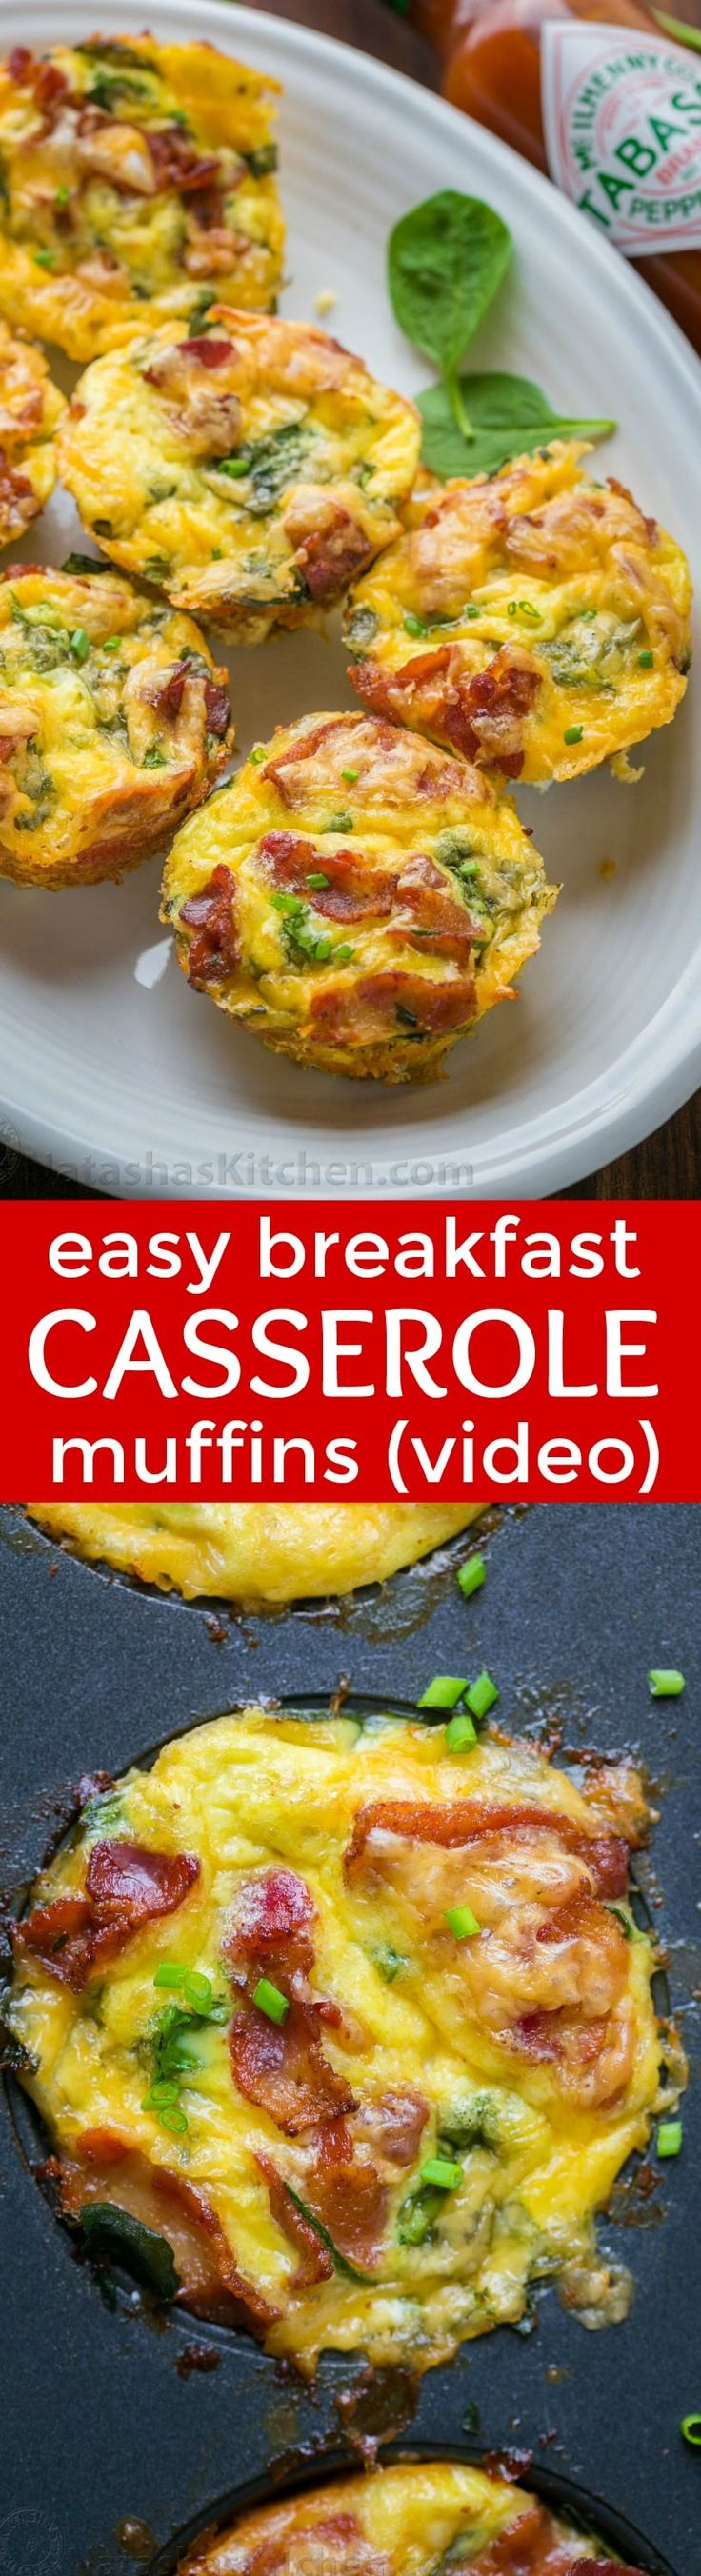 """""""Breakfast casserole muffins come together quickly. Loaded with potato, spinach, eggs, cheese and crisp bacon. Freezer friendly make-ahead breakfast muffins!   natashaskitchen.com"""